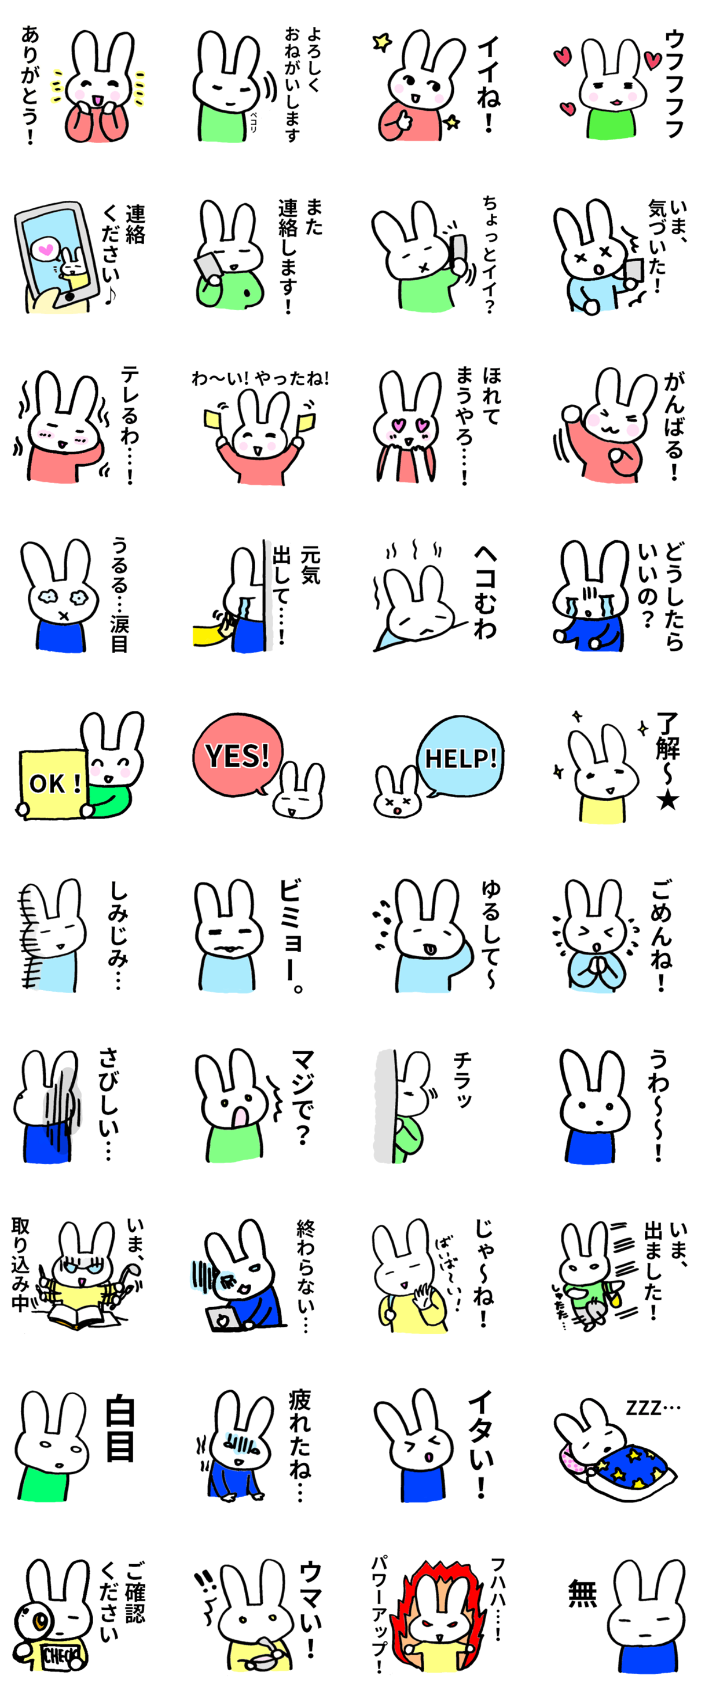 FireShot Capture 101 - 使えるしろうさぎ♪ - クリエイターズスタンプ - https___store.line.me_stickershop_product_1308546